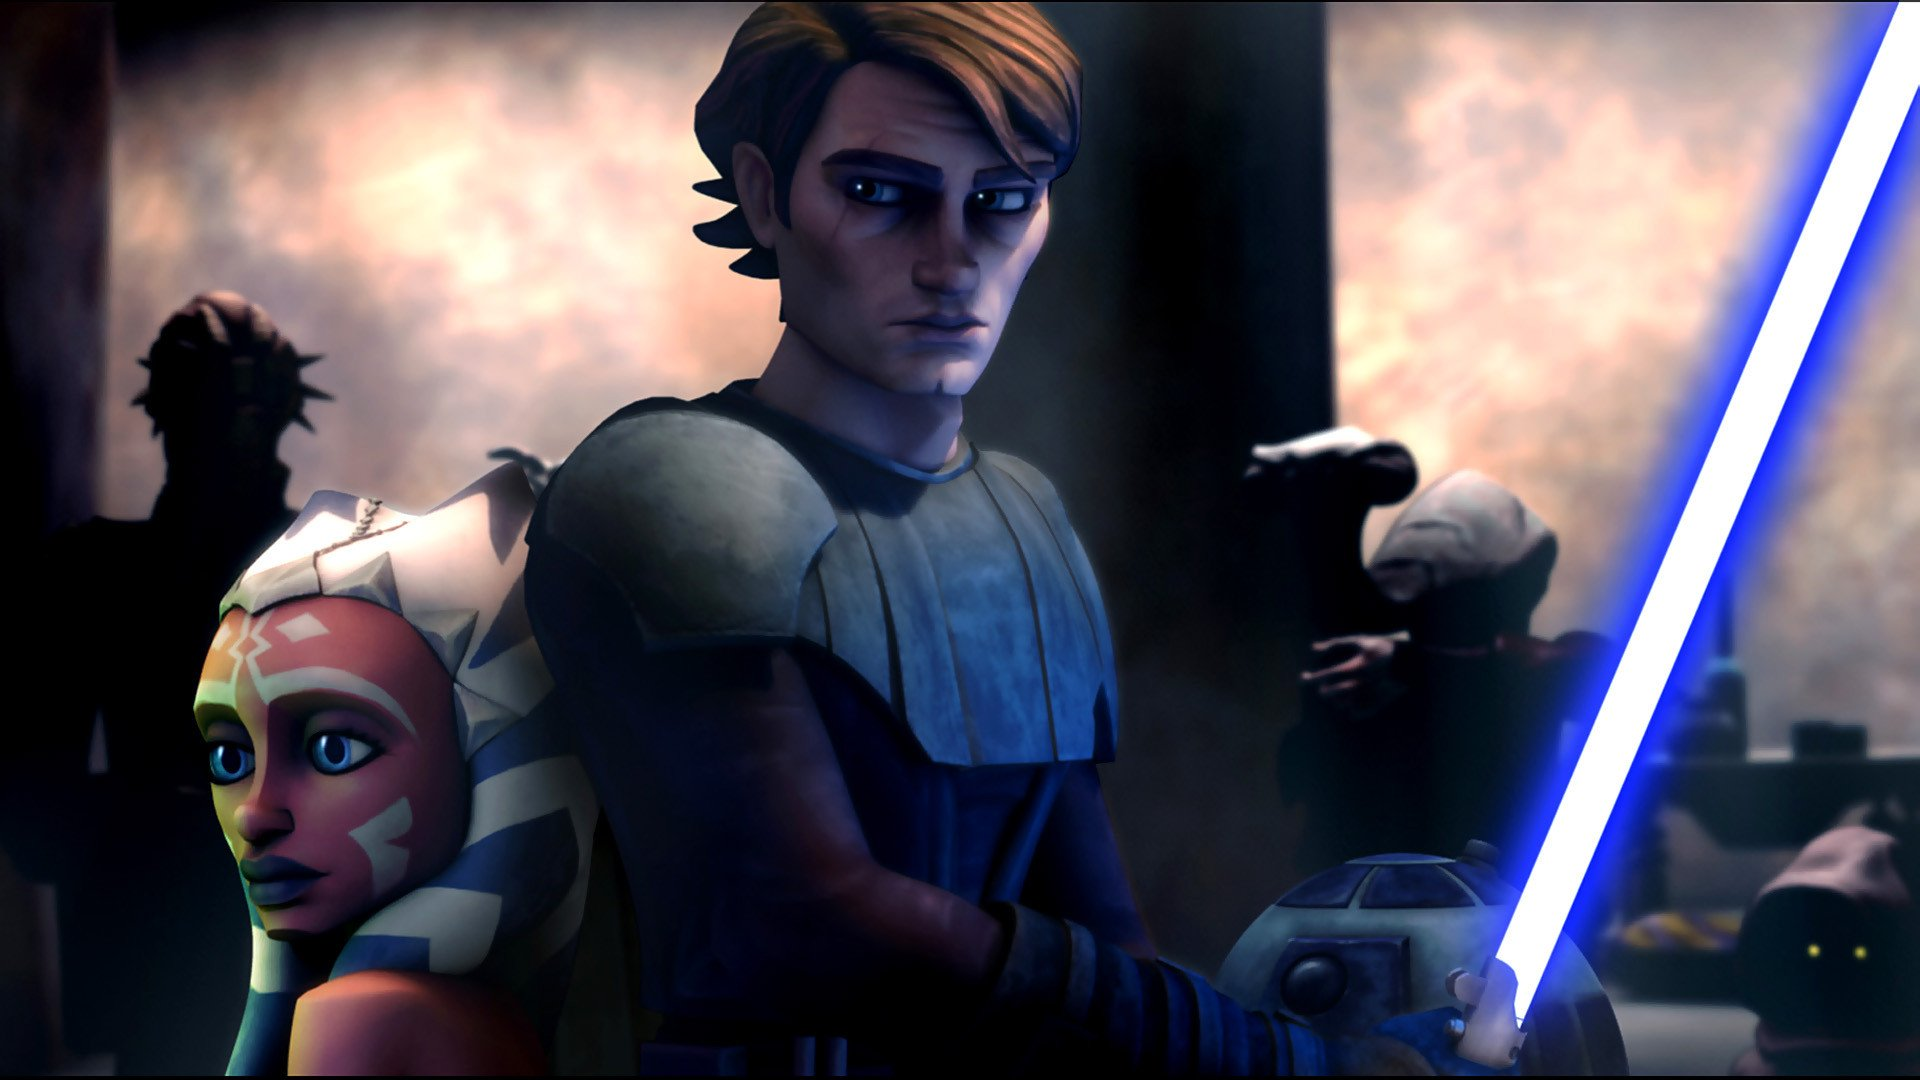 Star Wars The Clone Wars Wallpaper: Star Wars Wallpaper Anakin